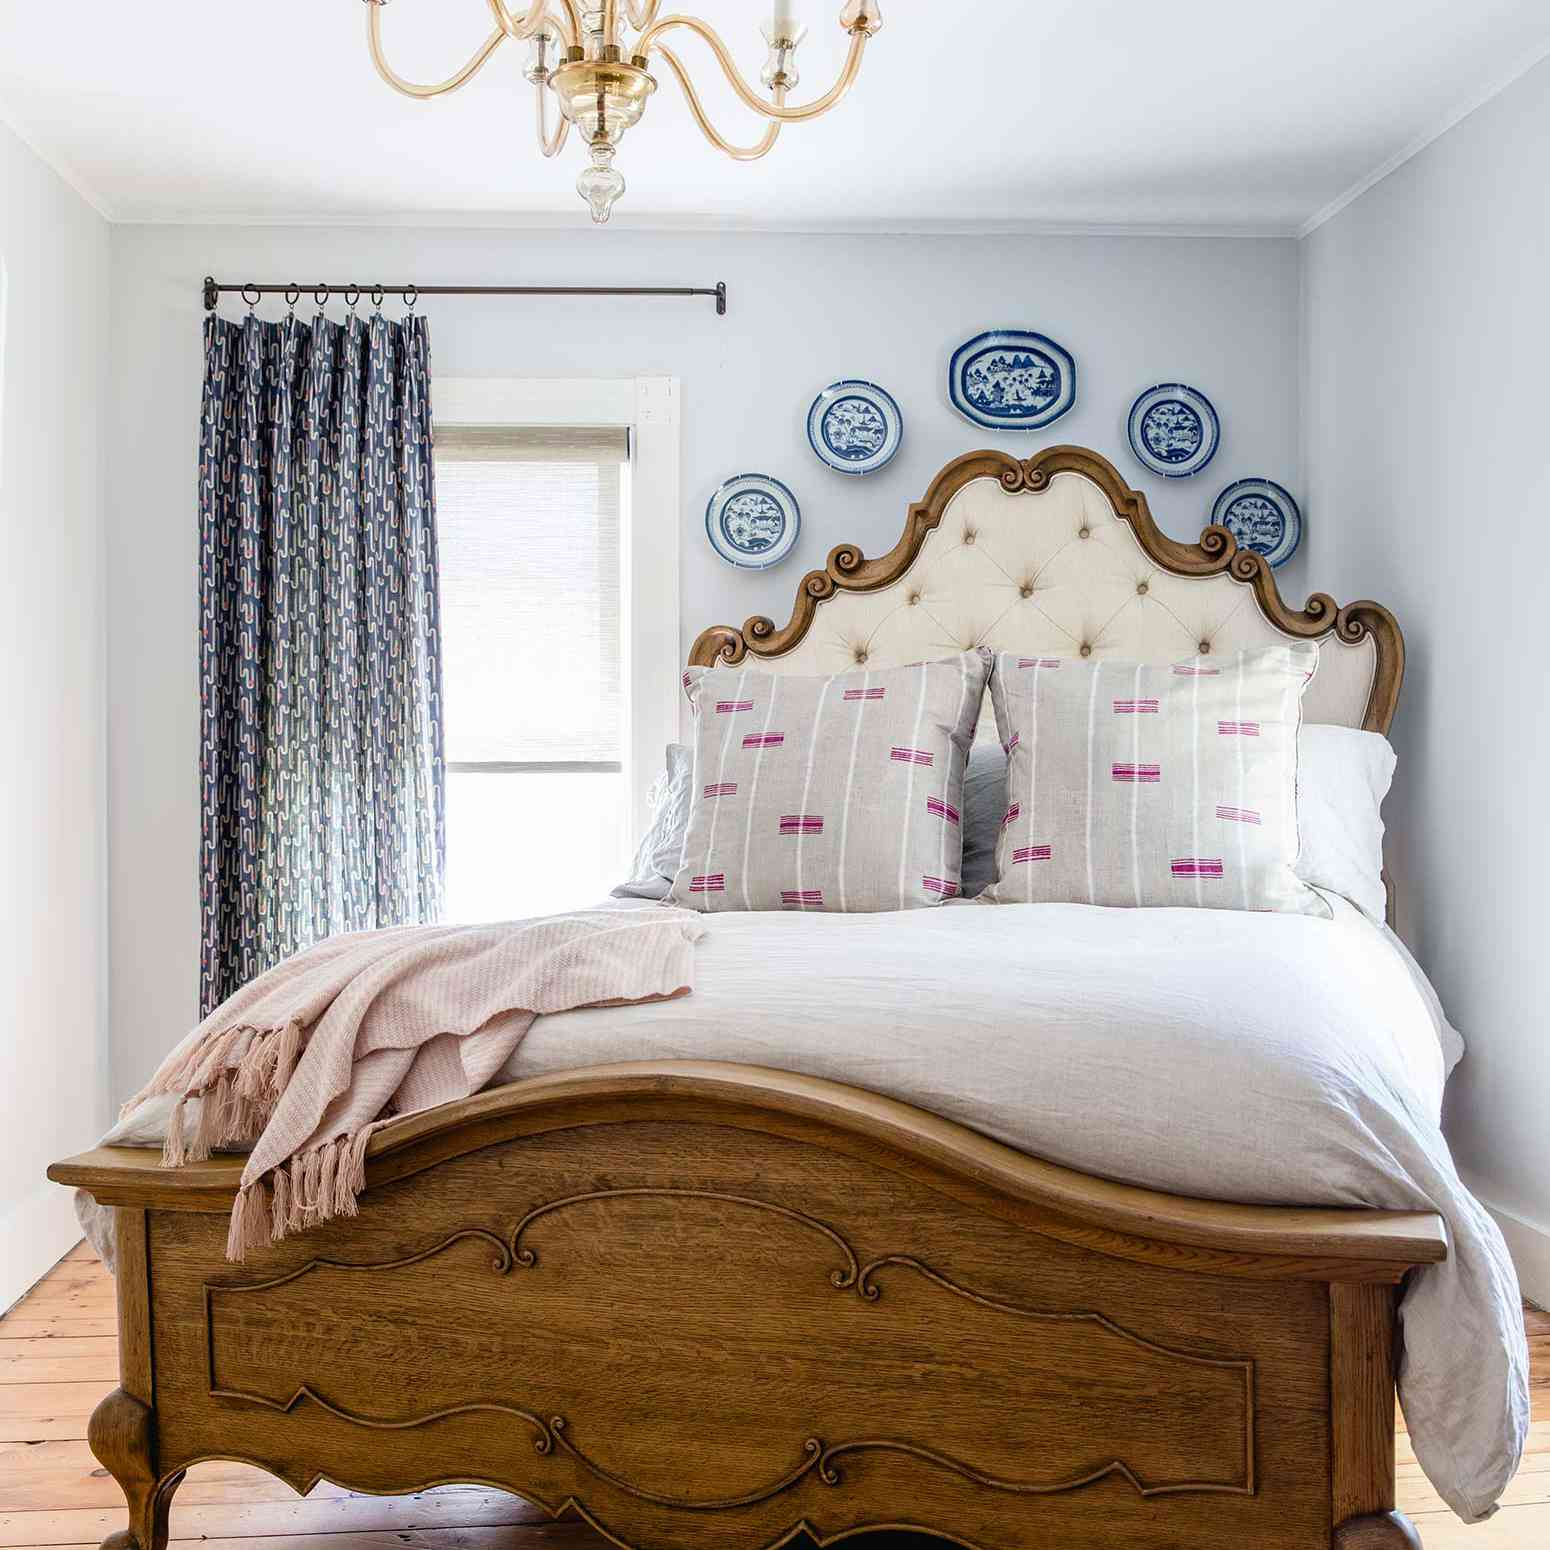 A Victorian bedroom filled with contemporary prints and textiles